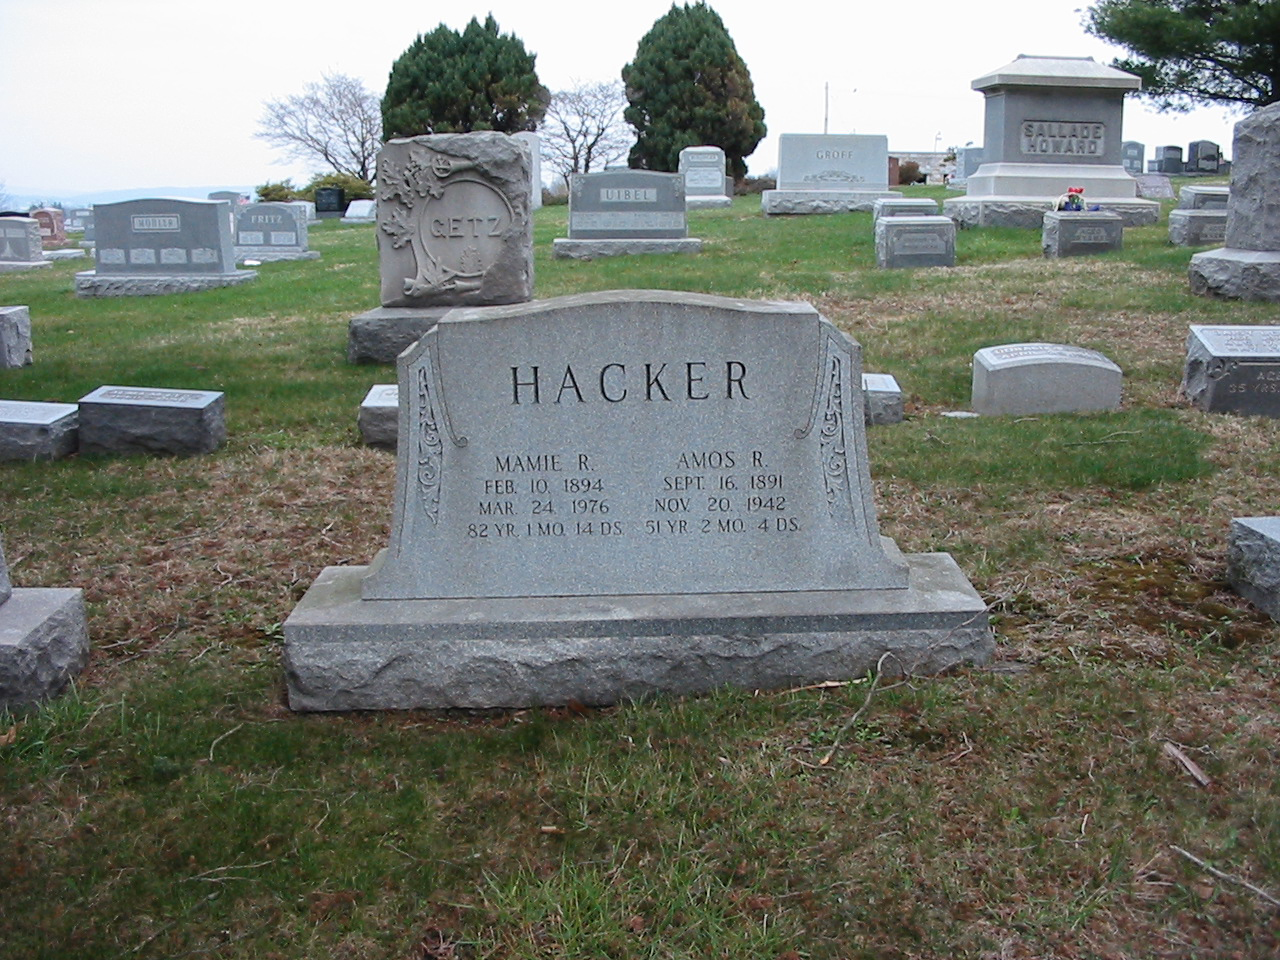 Gravestone of Amos R. Hacker and Mamie Rabold Hacker